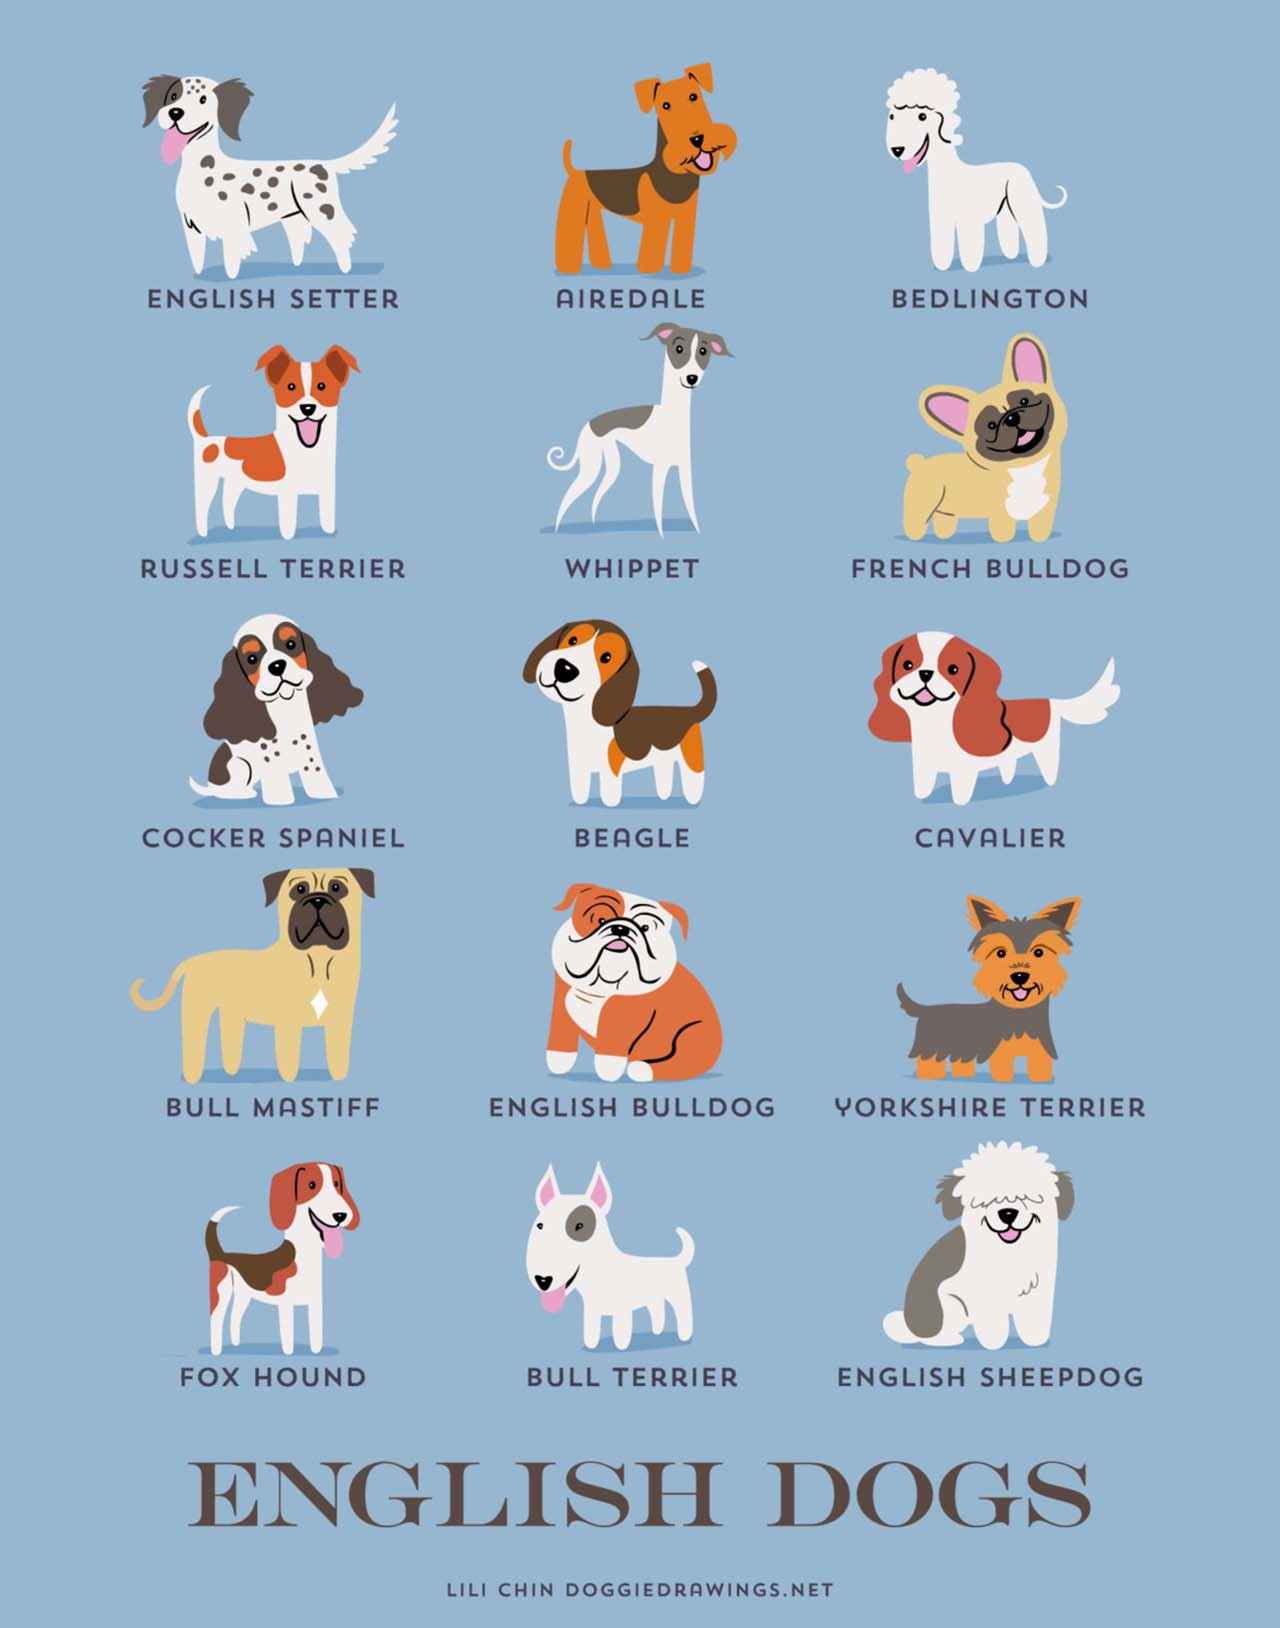 Origin Of Dogs: Cute Illustration By Lili Chin Show Where Dog Breeds Originating From #21: English Dogs